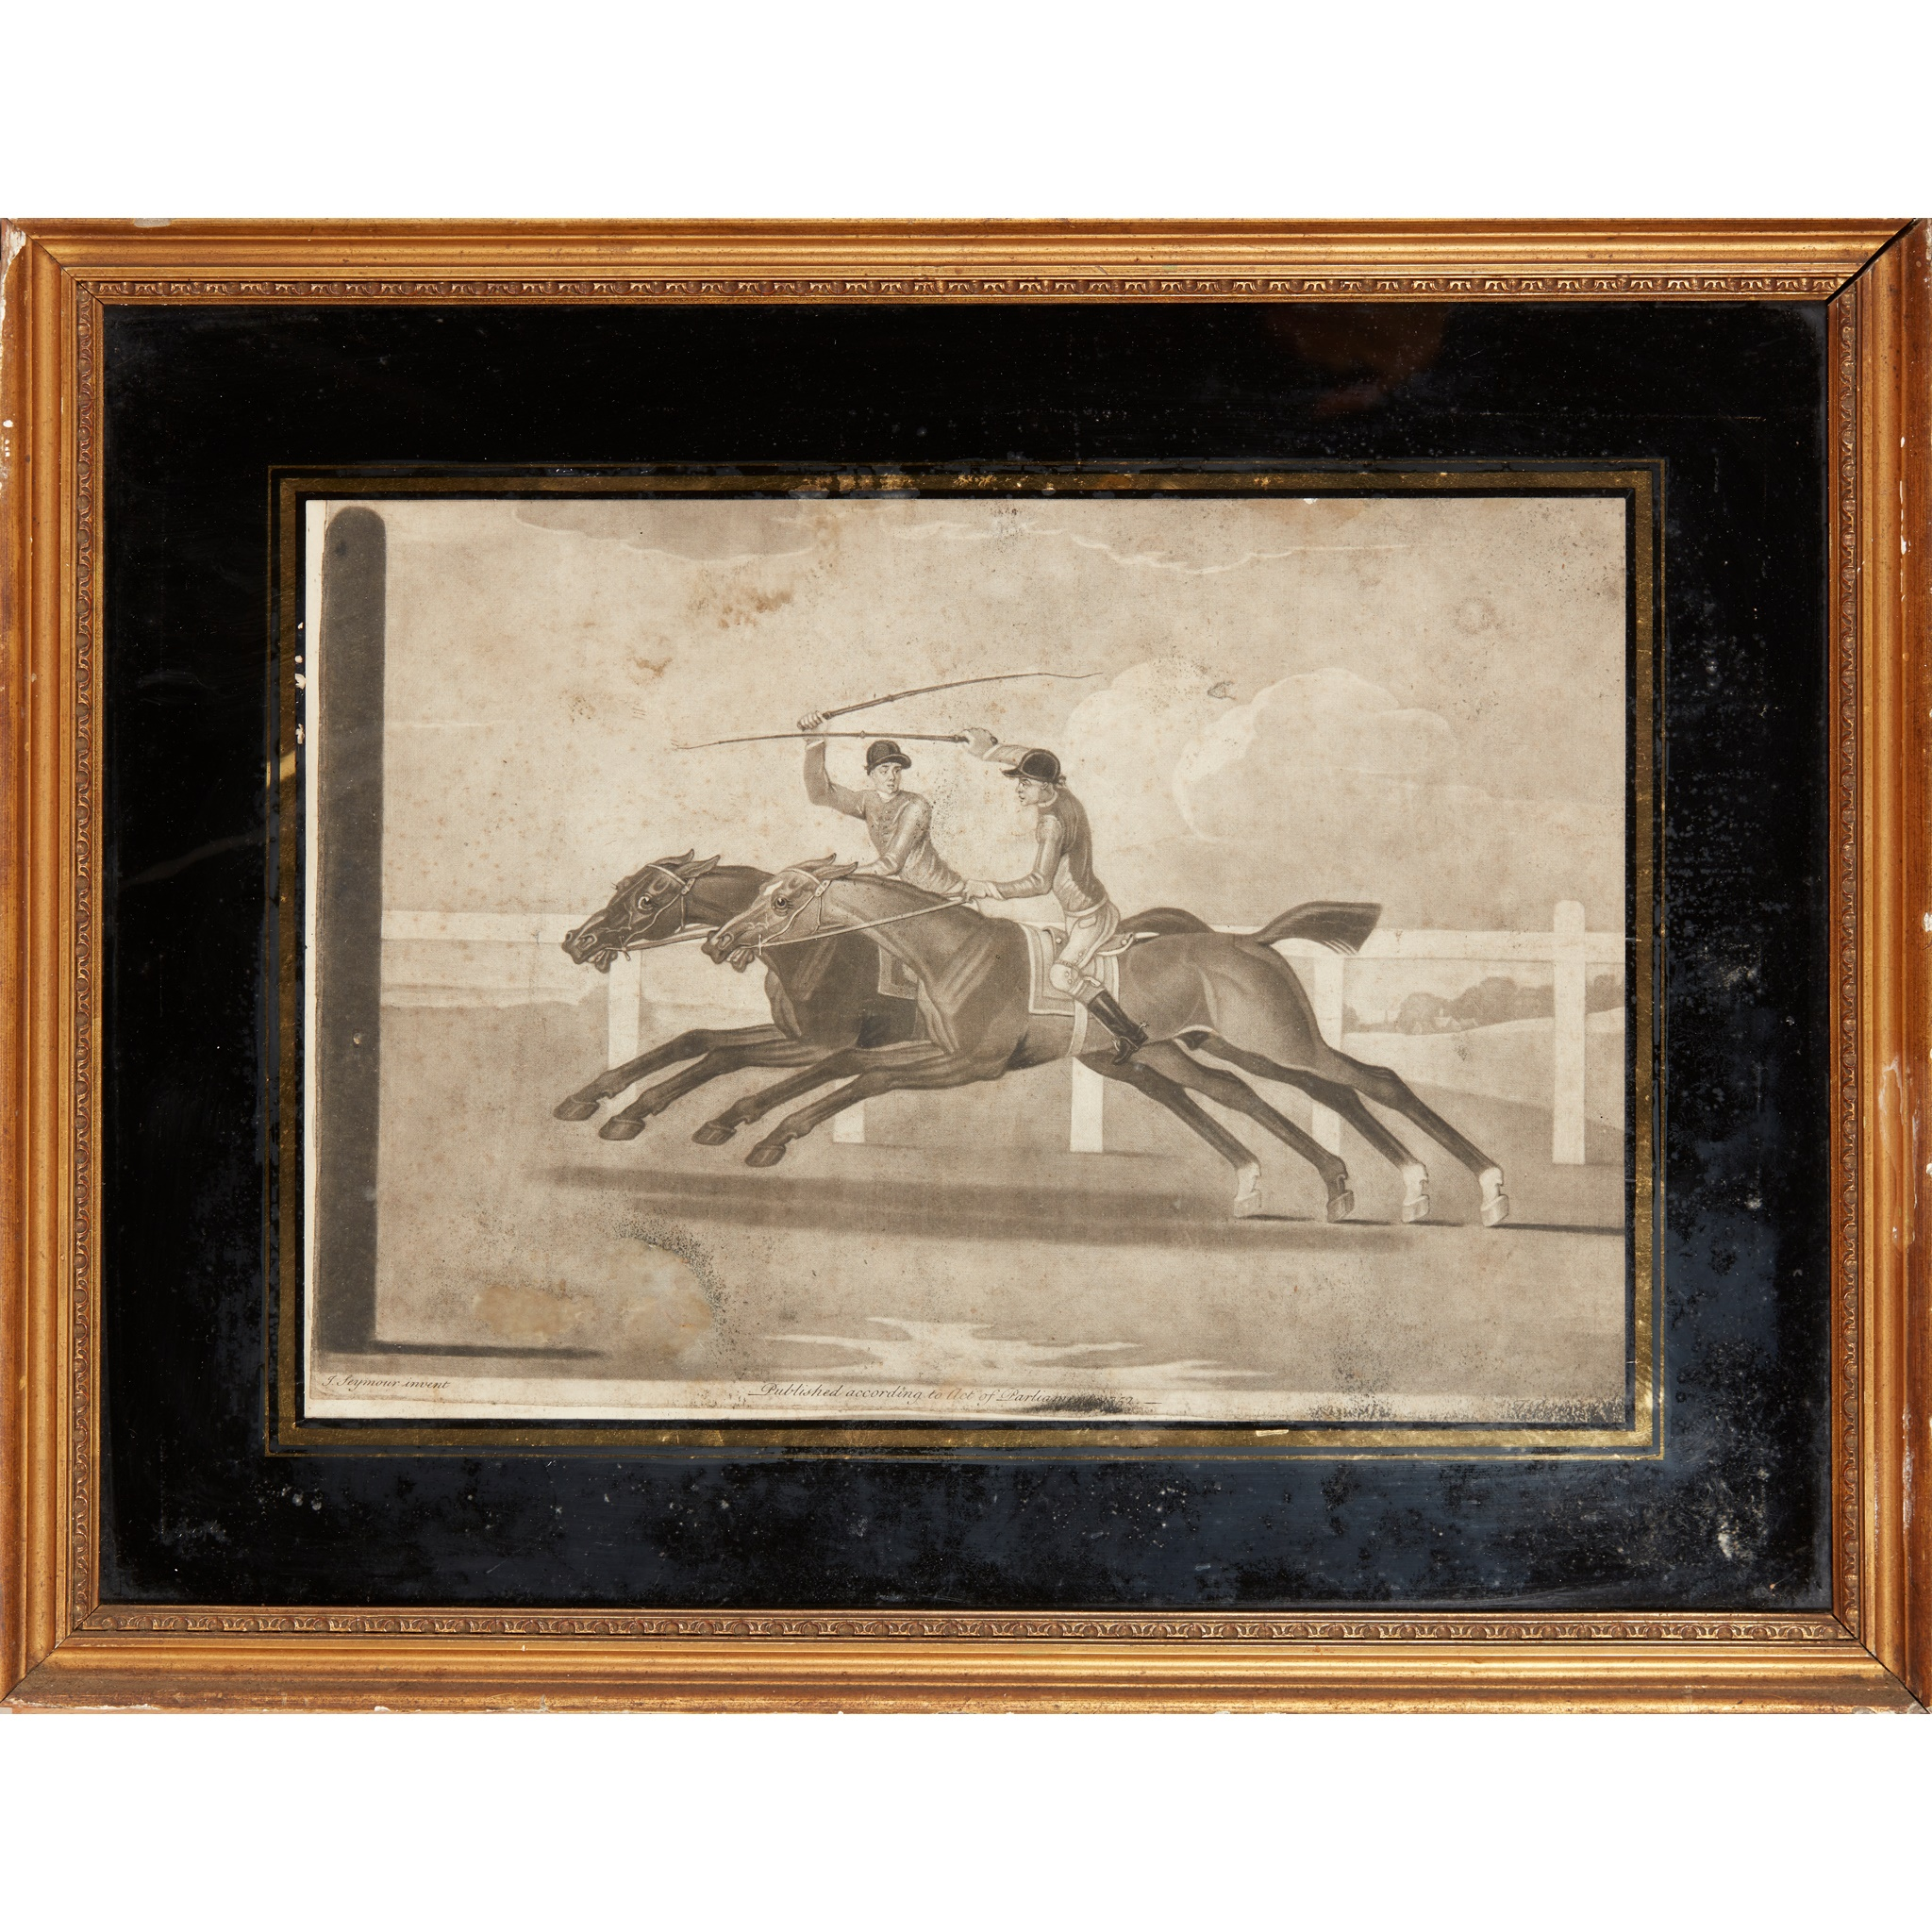 COLLECTION OF ELEVEN MEZZOTINT EQUESTRIAN PRINTS LATE 18TH CENTURY - Image 7 of 8